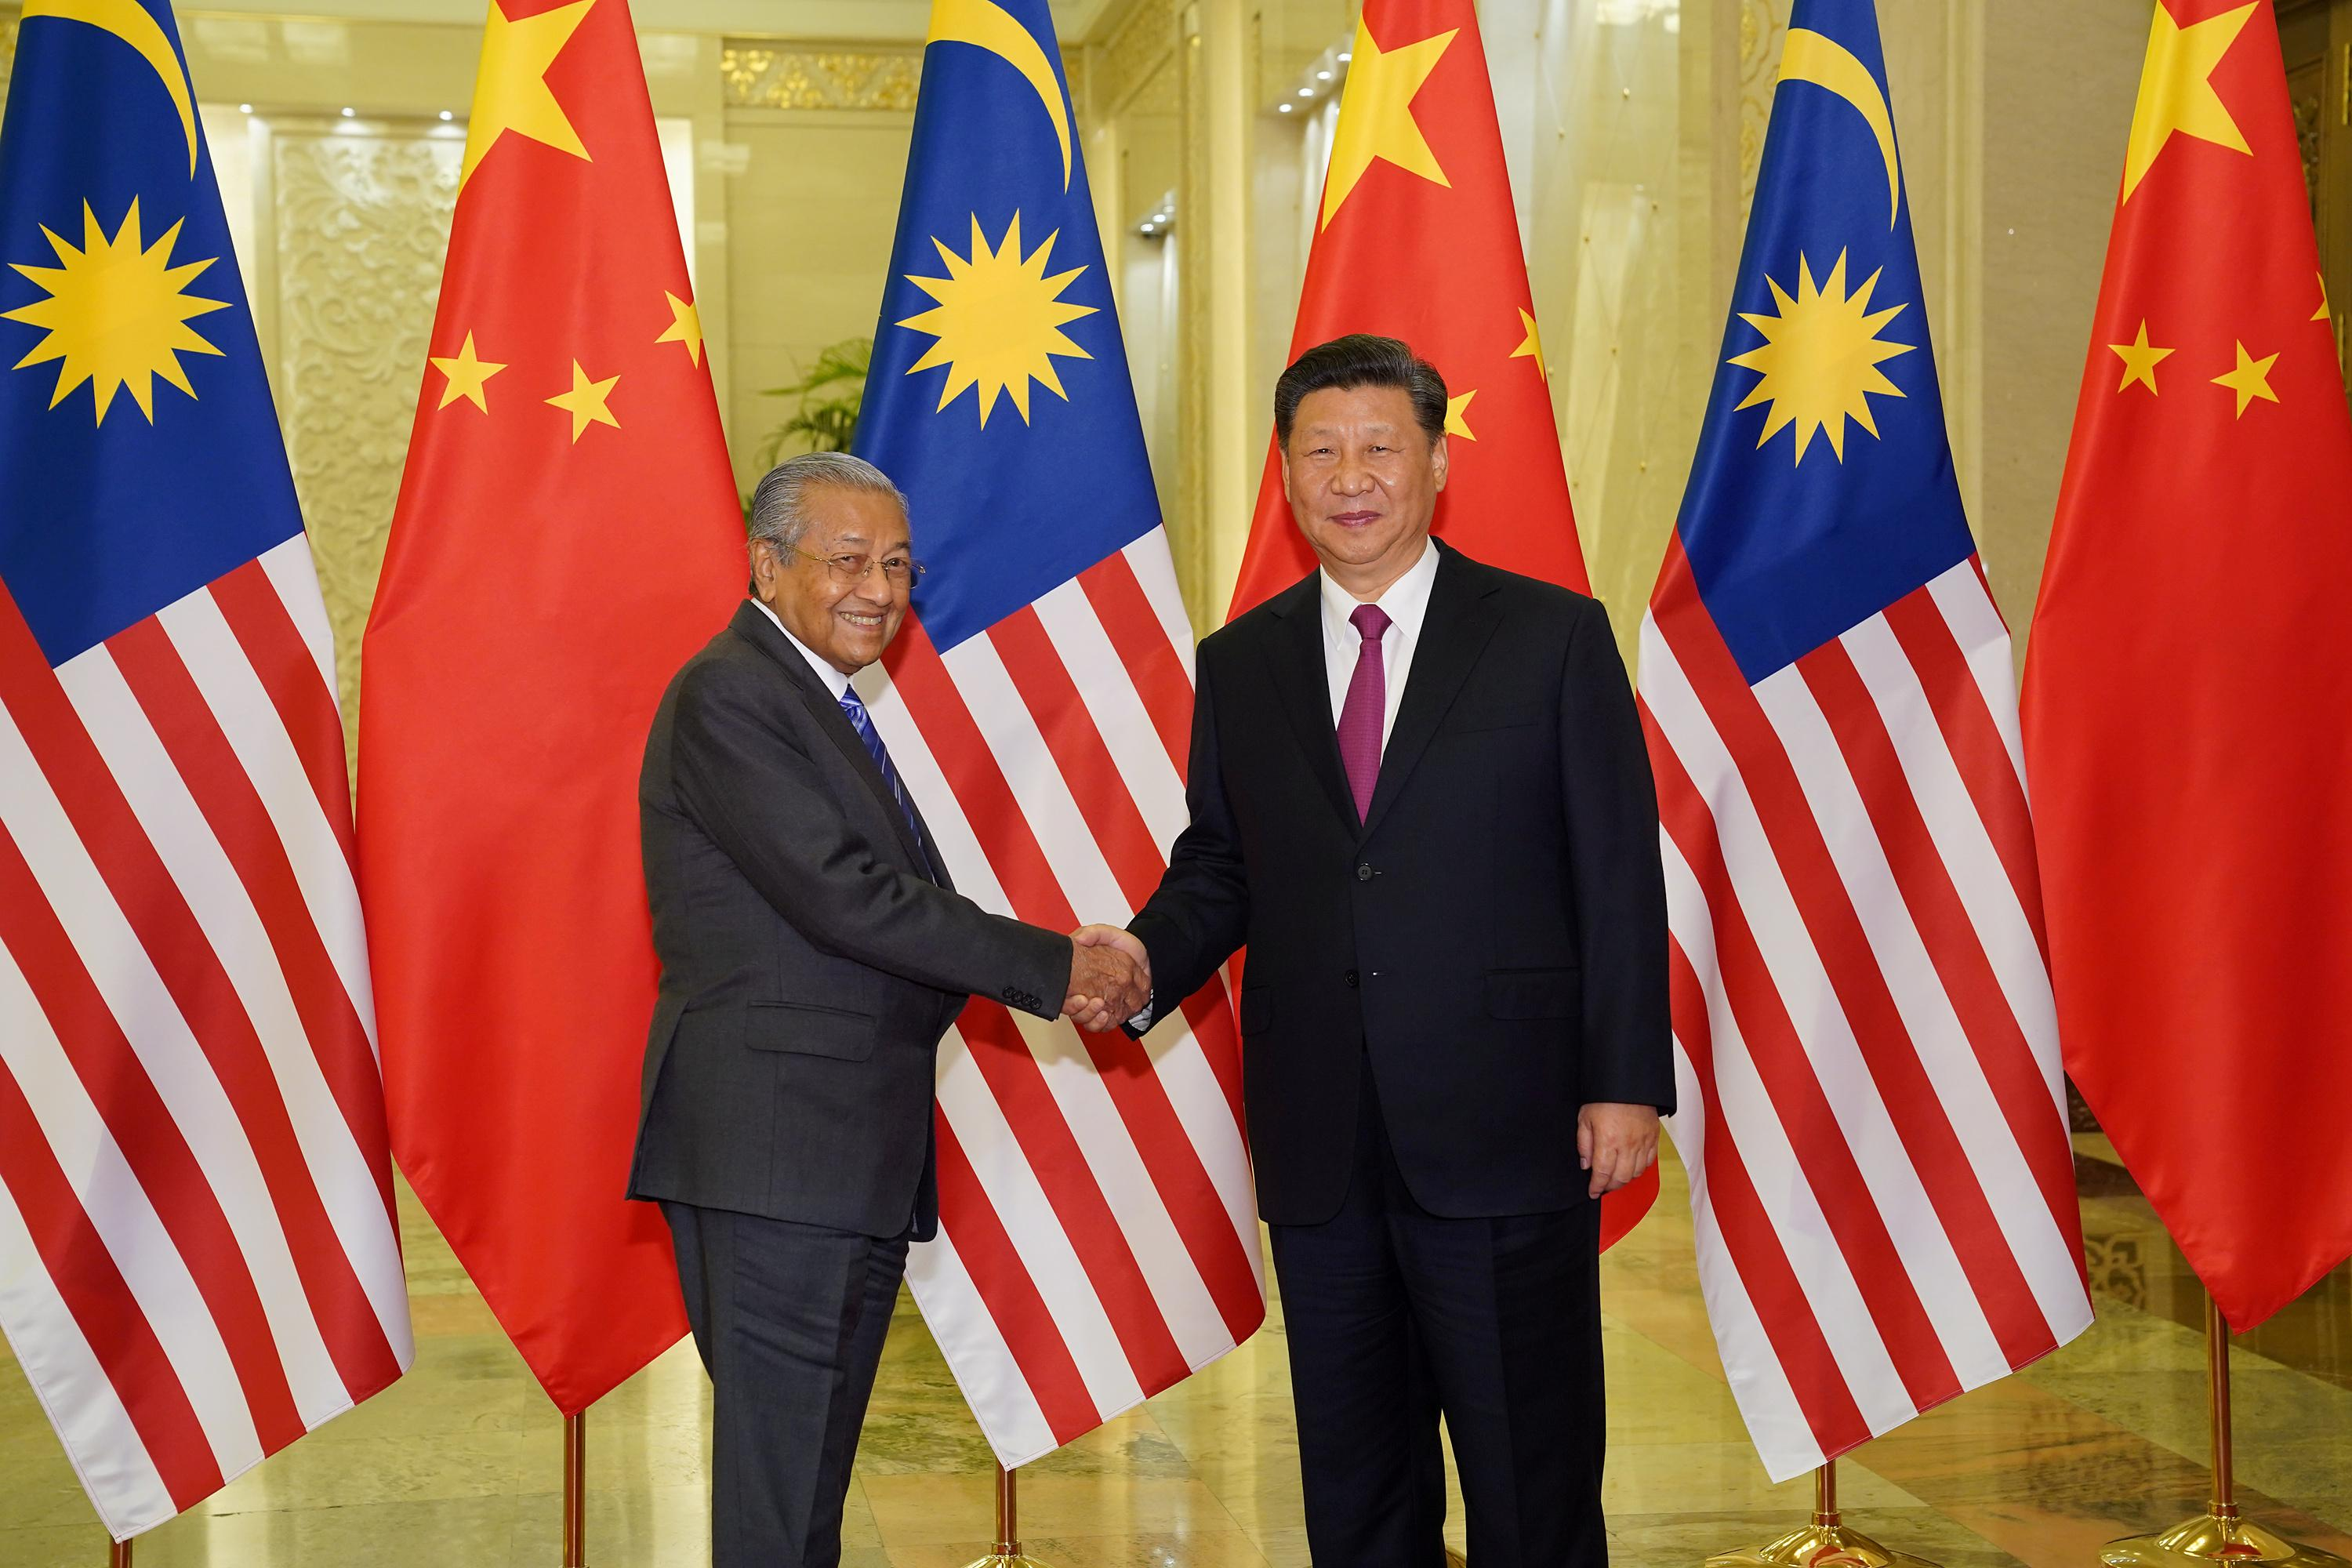 Malaysia seized $240 million from Chinese company over pipeline project: PM Mahathir